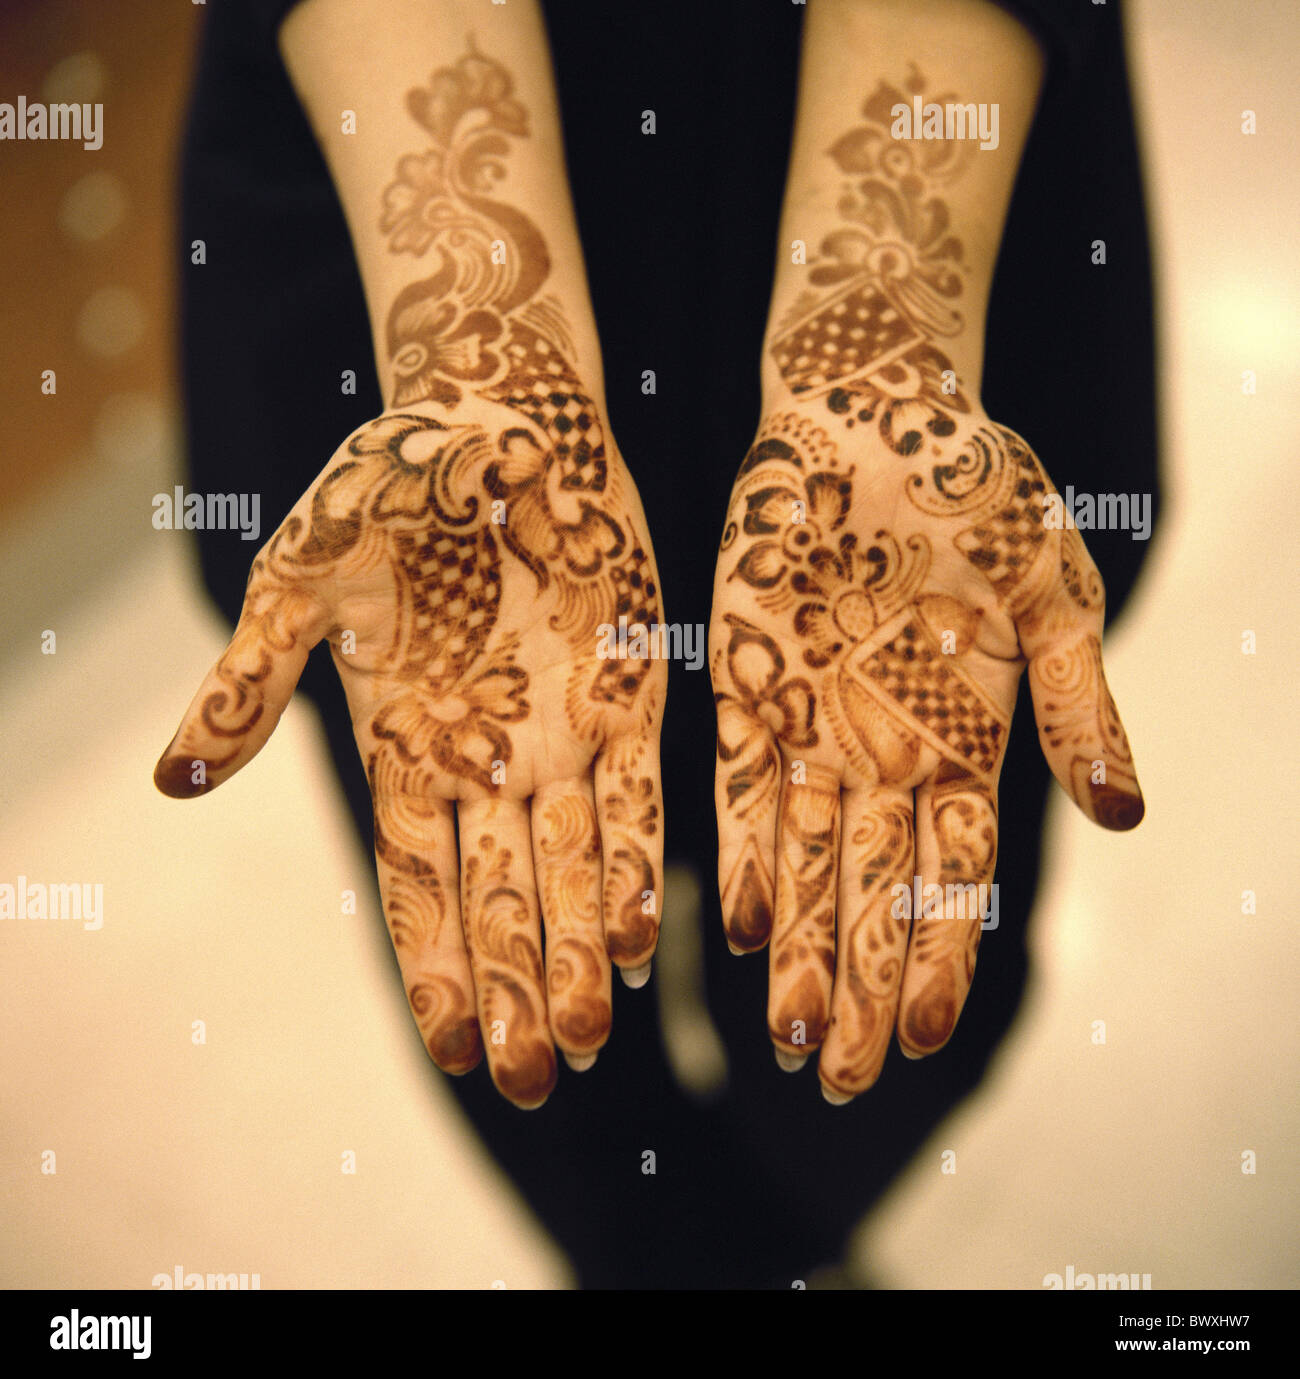 Bahreïn 10331604 peint main femme henna motif vie close-up échantillon tattoo ornements Photo Stock